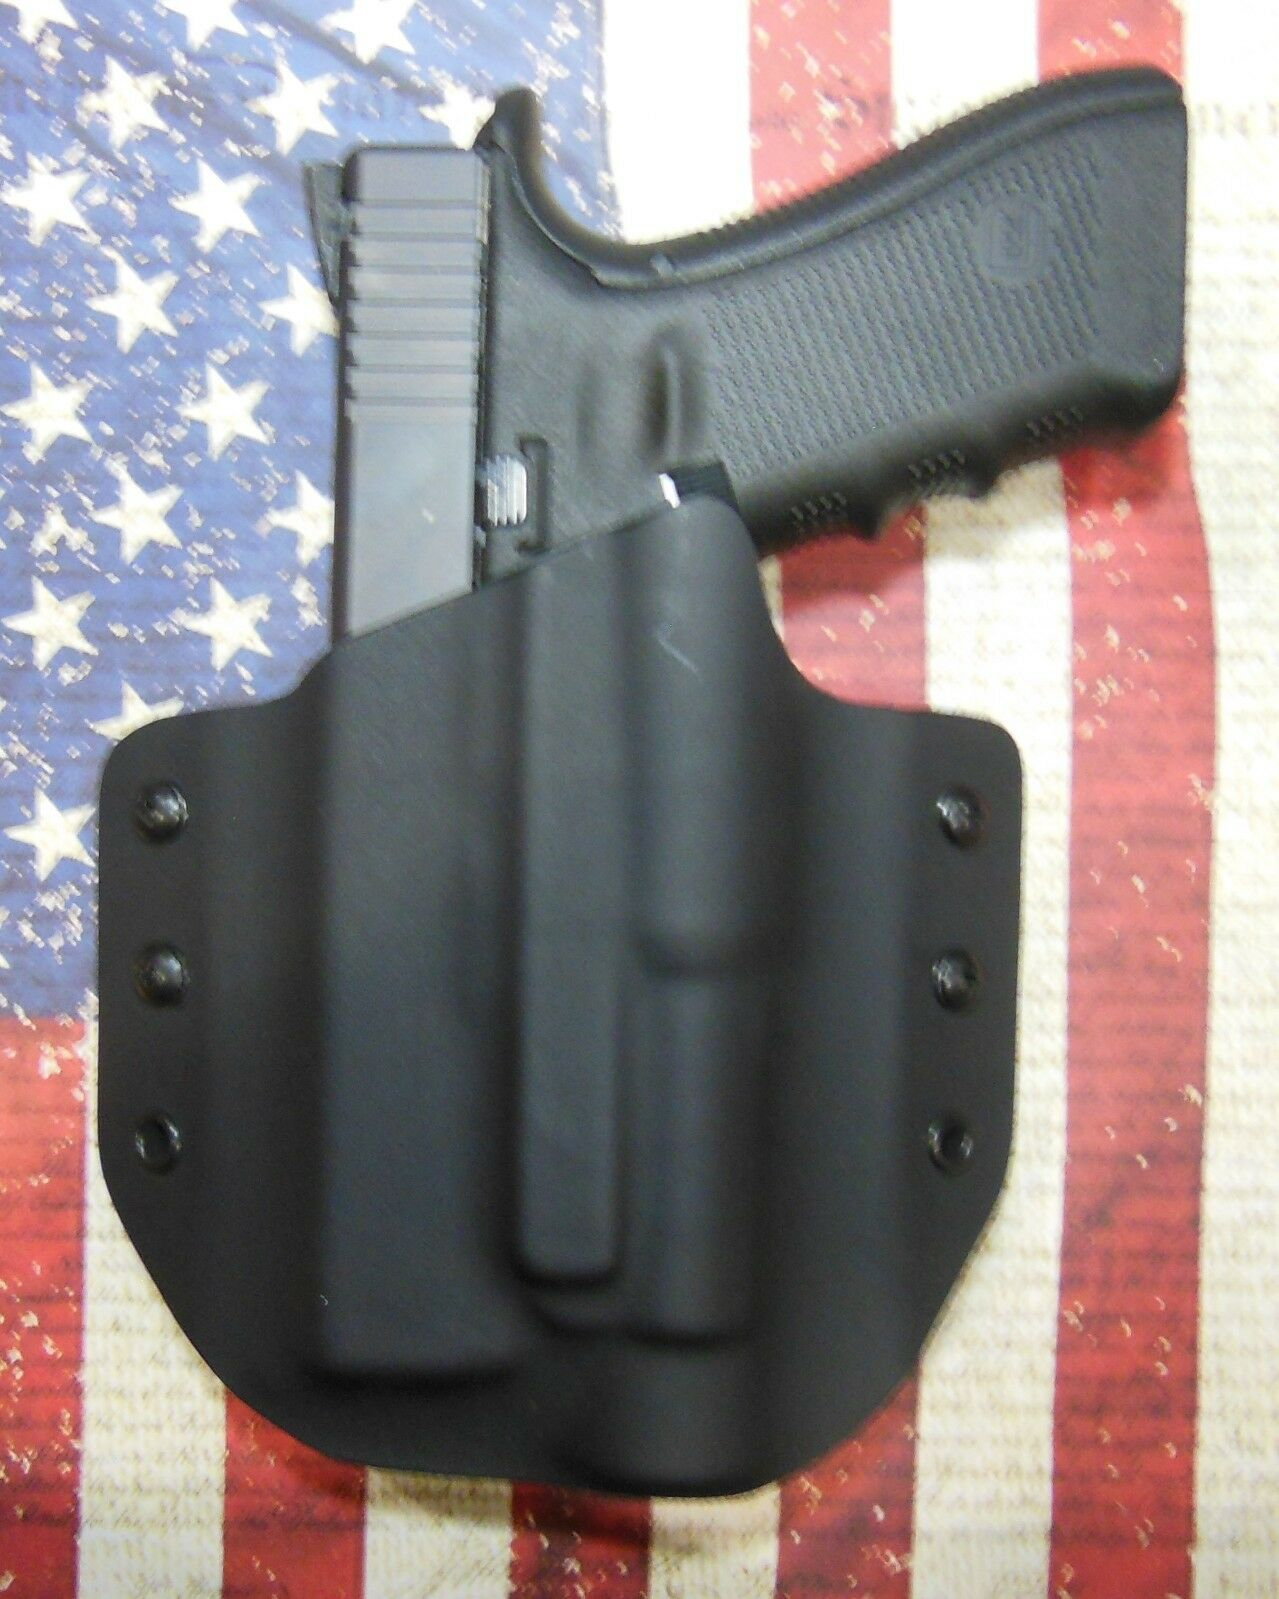 Sig Sauer P220 with TLR-1 (S, HL) Light Bearing Holster